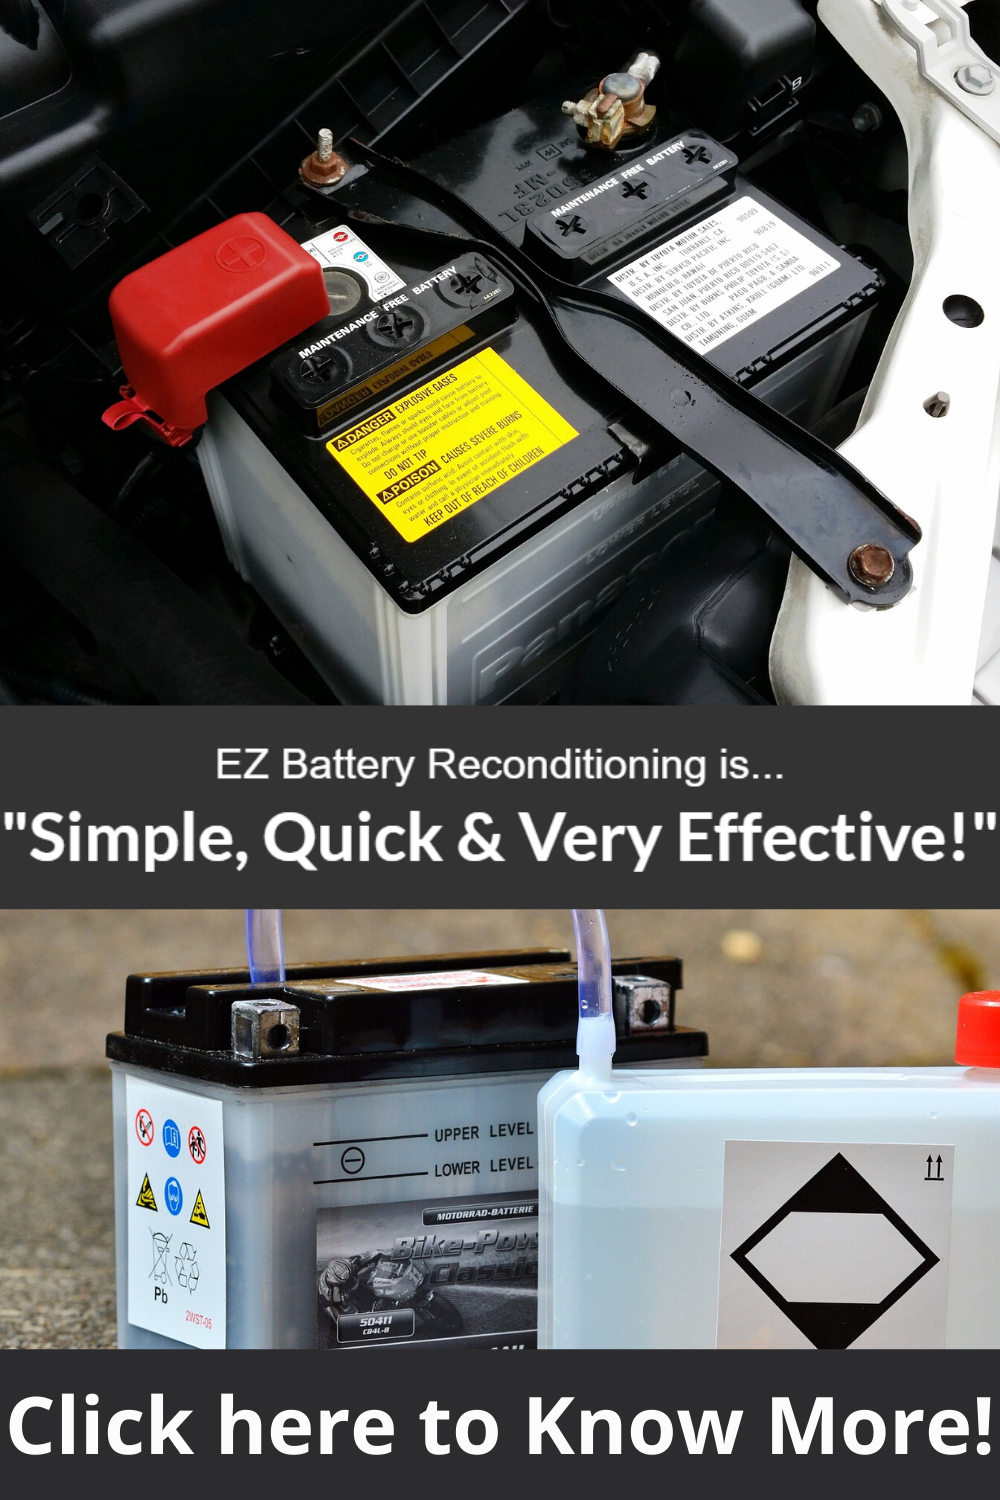 Bringing Dead Batteries Back To Life Is Simple